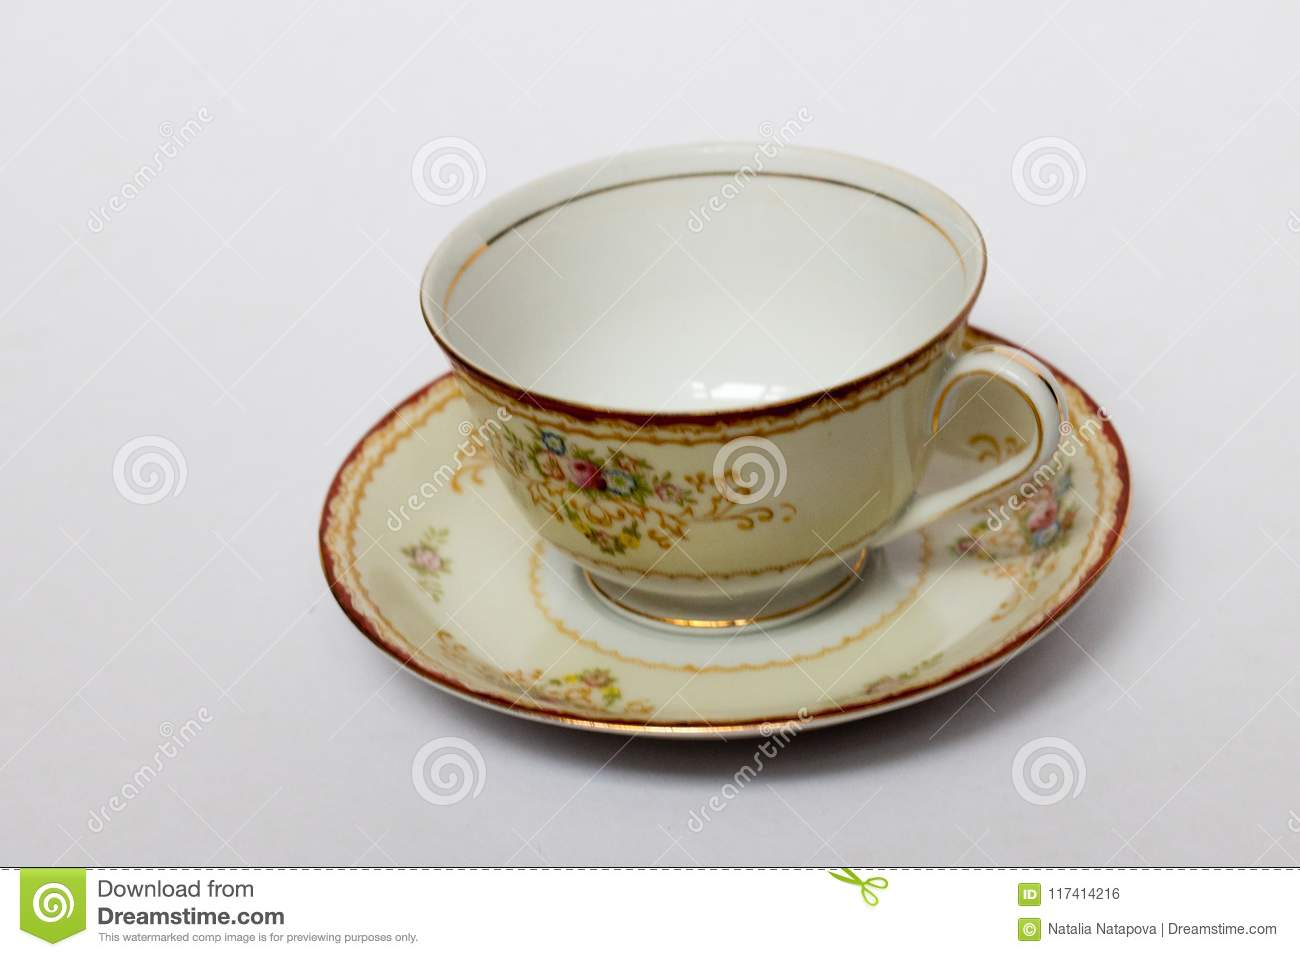 A Porcelain Cup In A Saucer Stock Photo - Image of